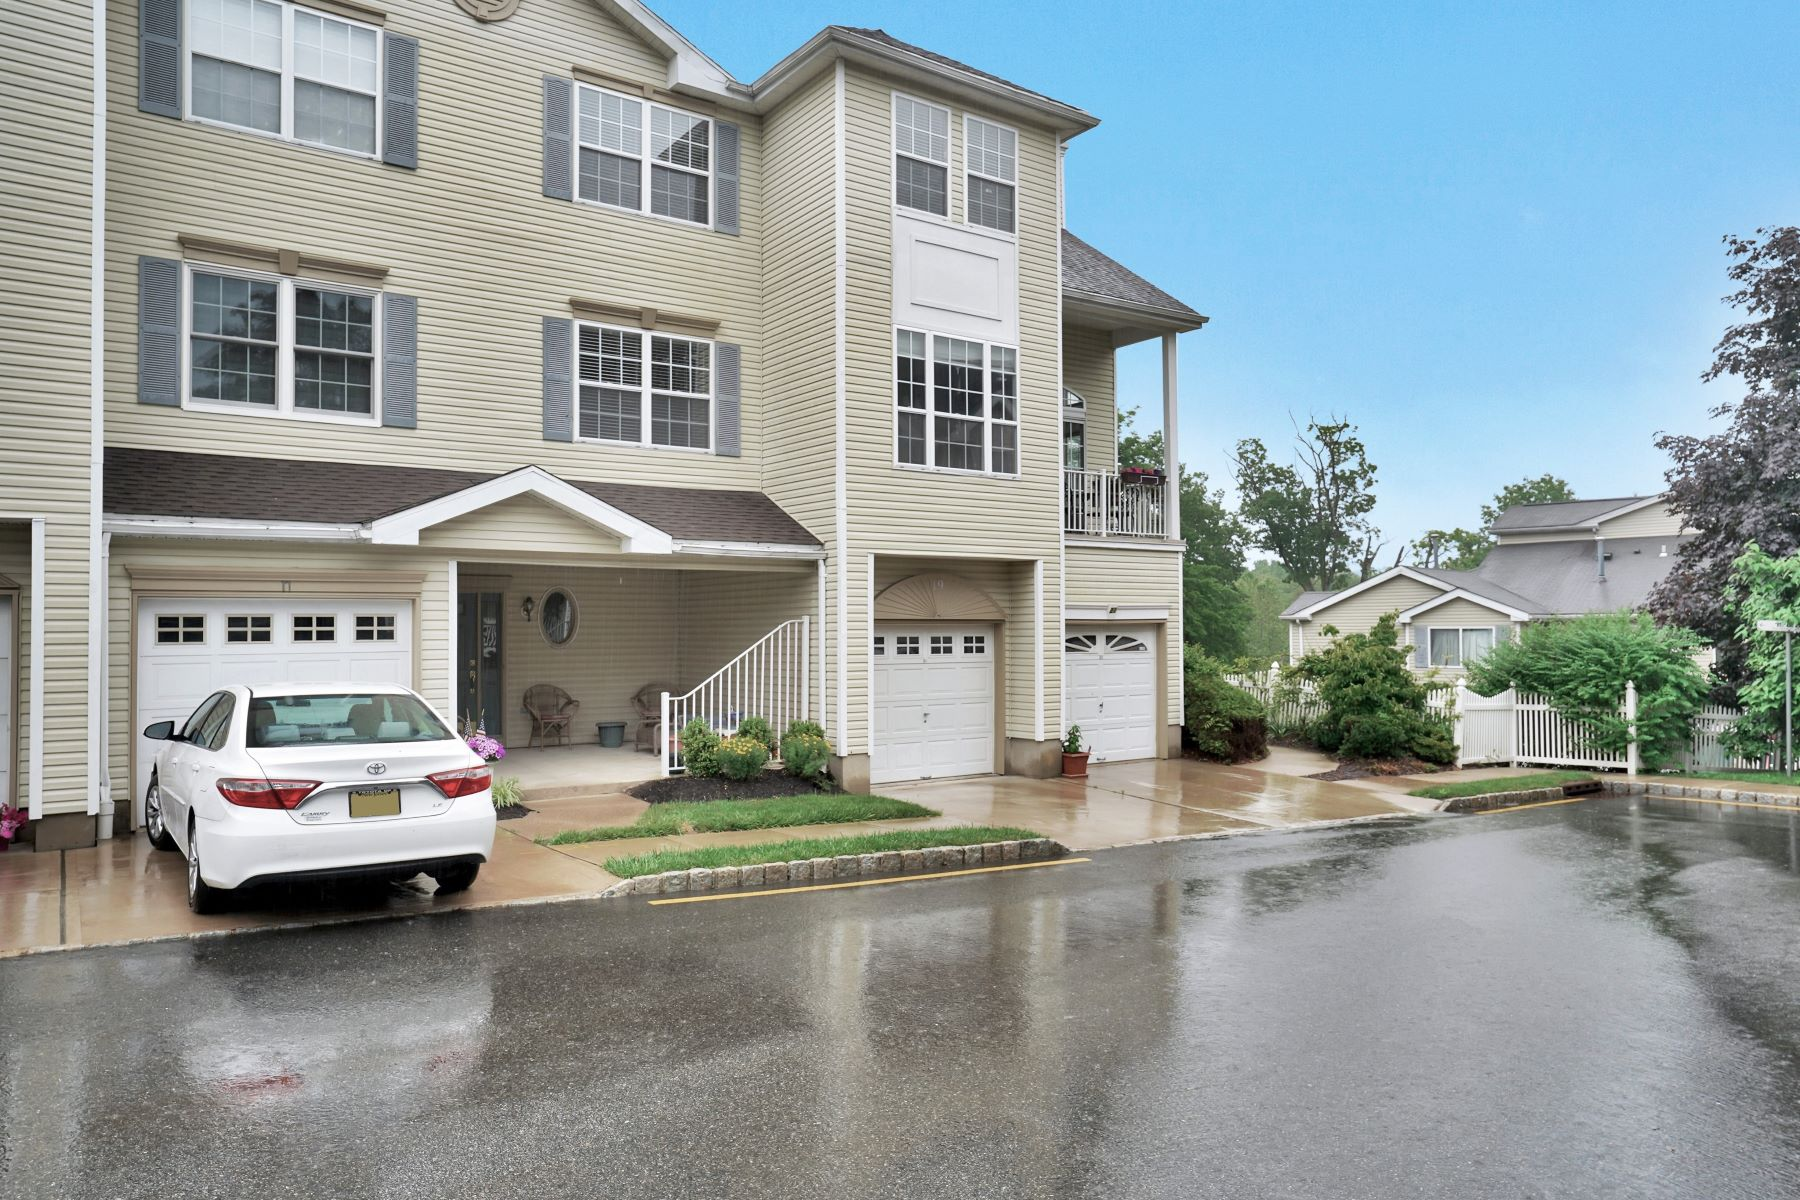 townhouses for Sale at Private and Bright 19 Hancock Drive Morris Township, New Jersey 07960 United States